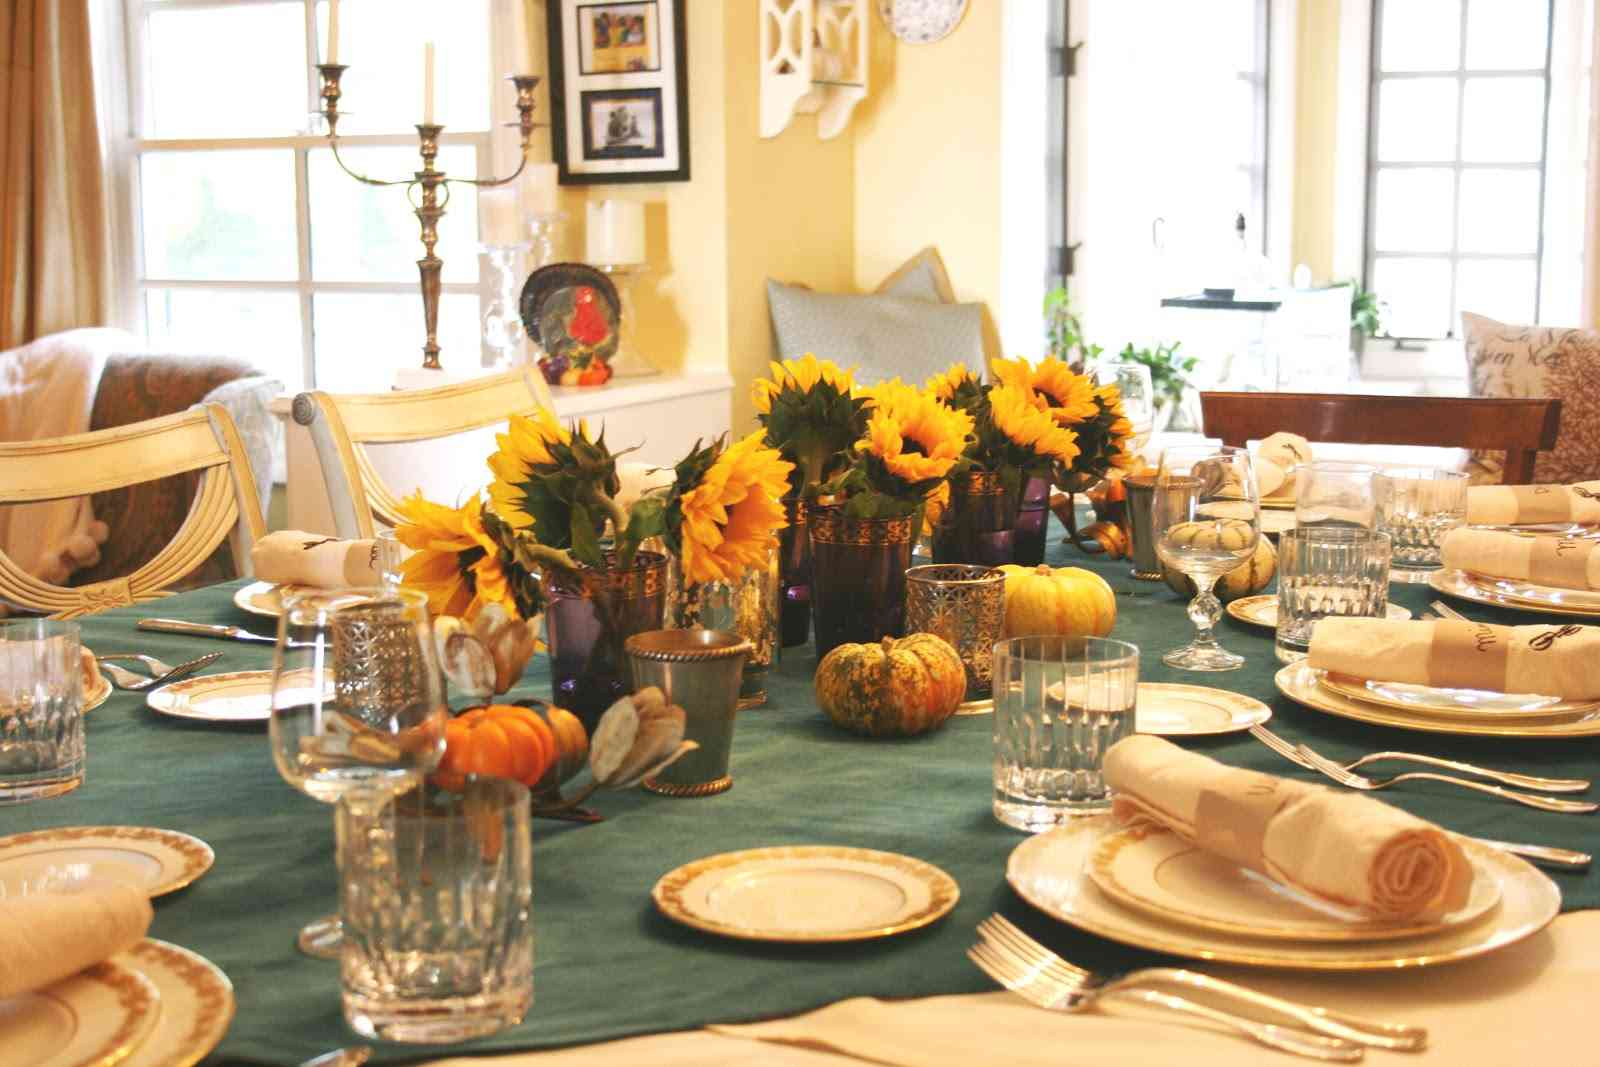 How to make dining table d cor for round table shape - Thanksgiving dinner table decorations ...